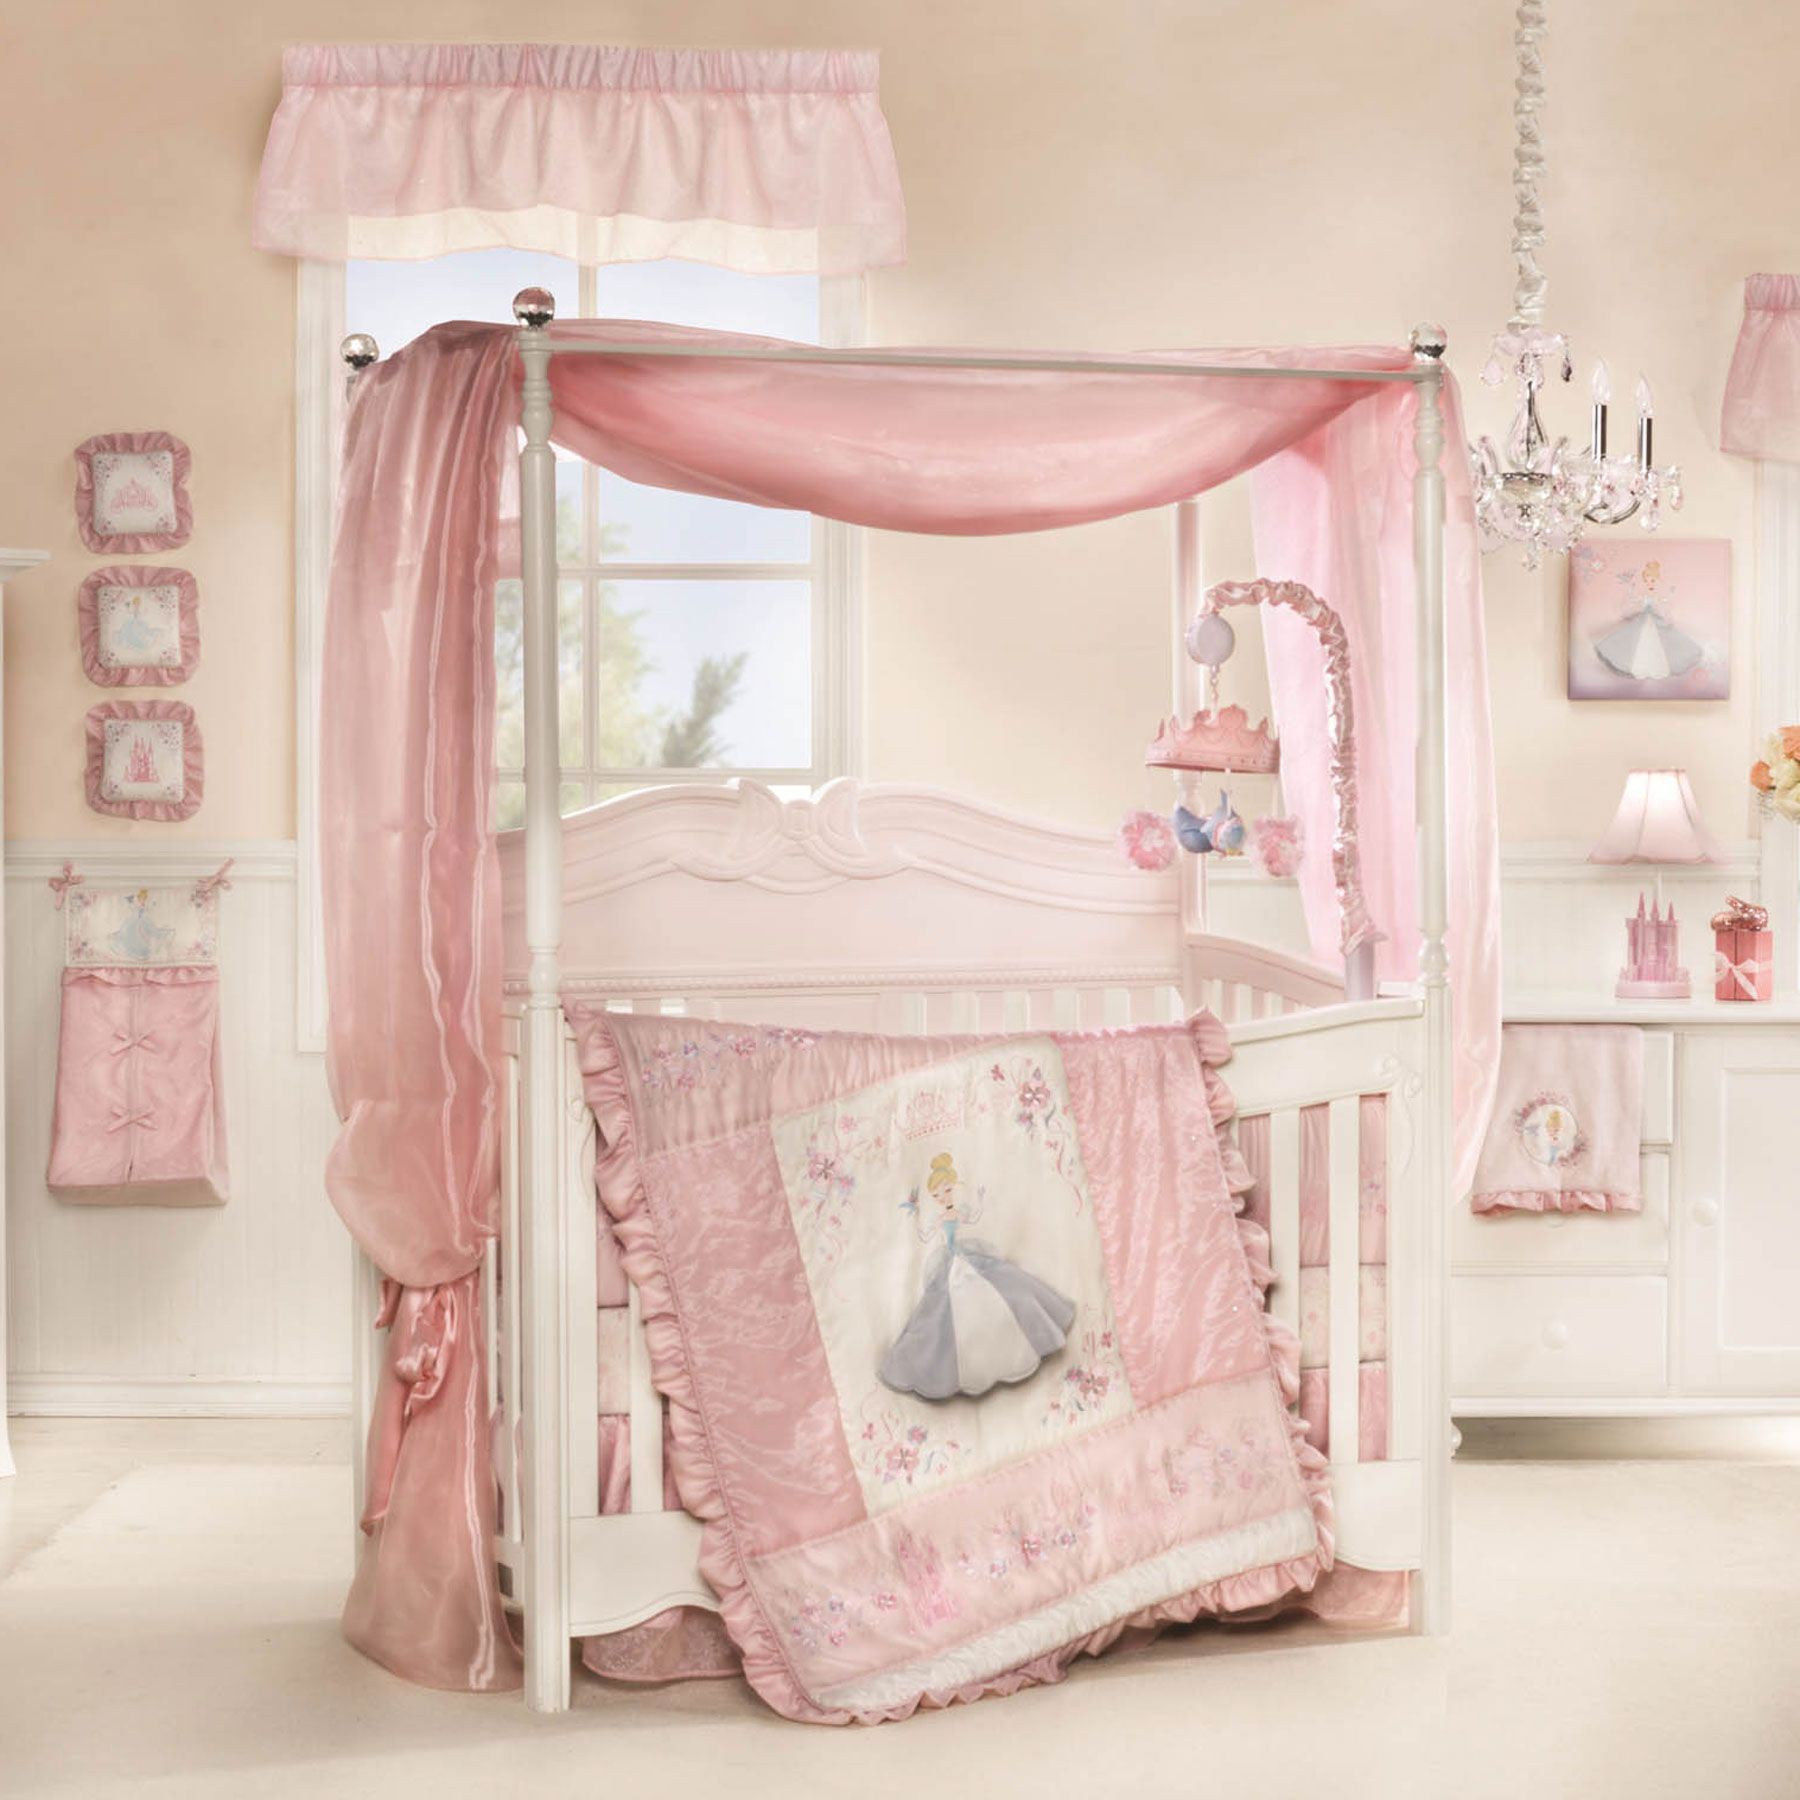 CINDERELLA Premier 7-Piece Crib Bedding Set featuring Disney Princess & CINDERELLA Premier 7-Piece Crib Bedding Set featuring Disney ...